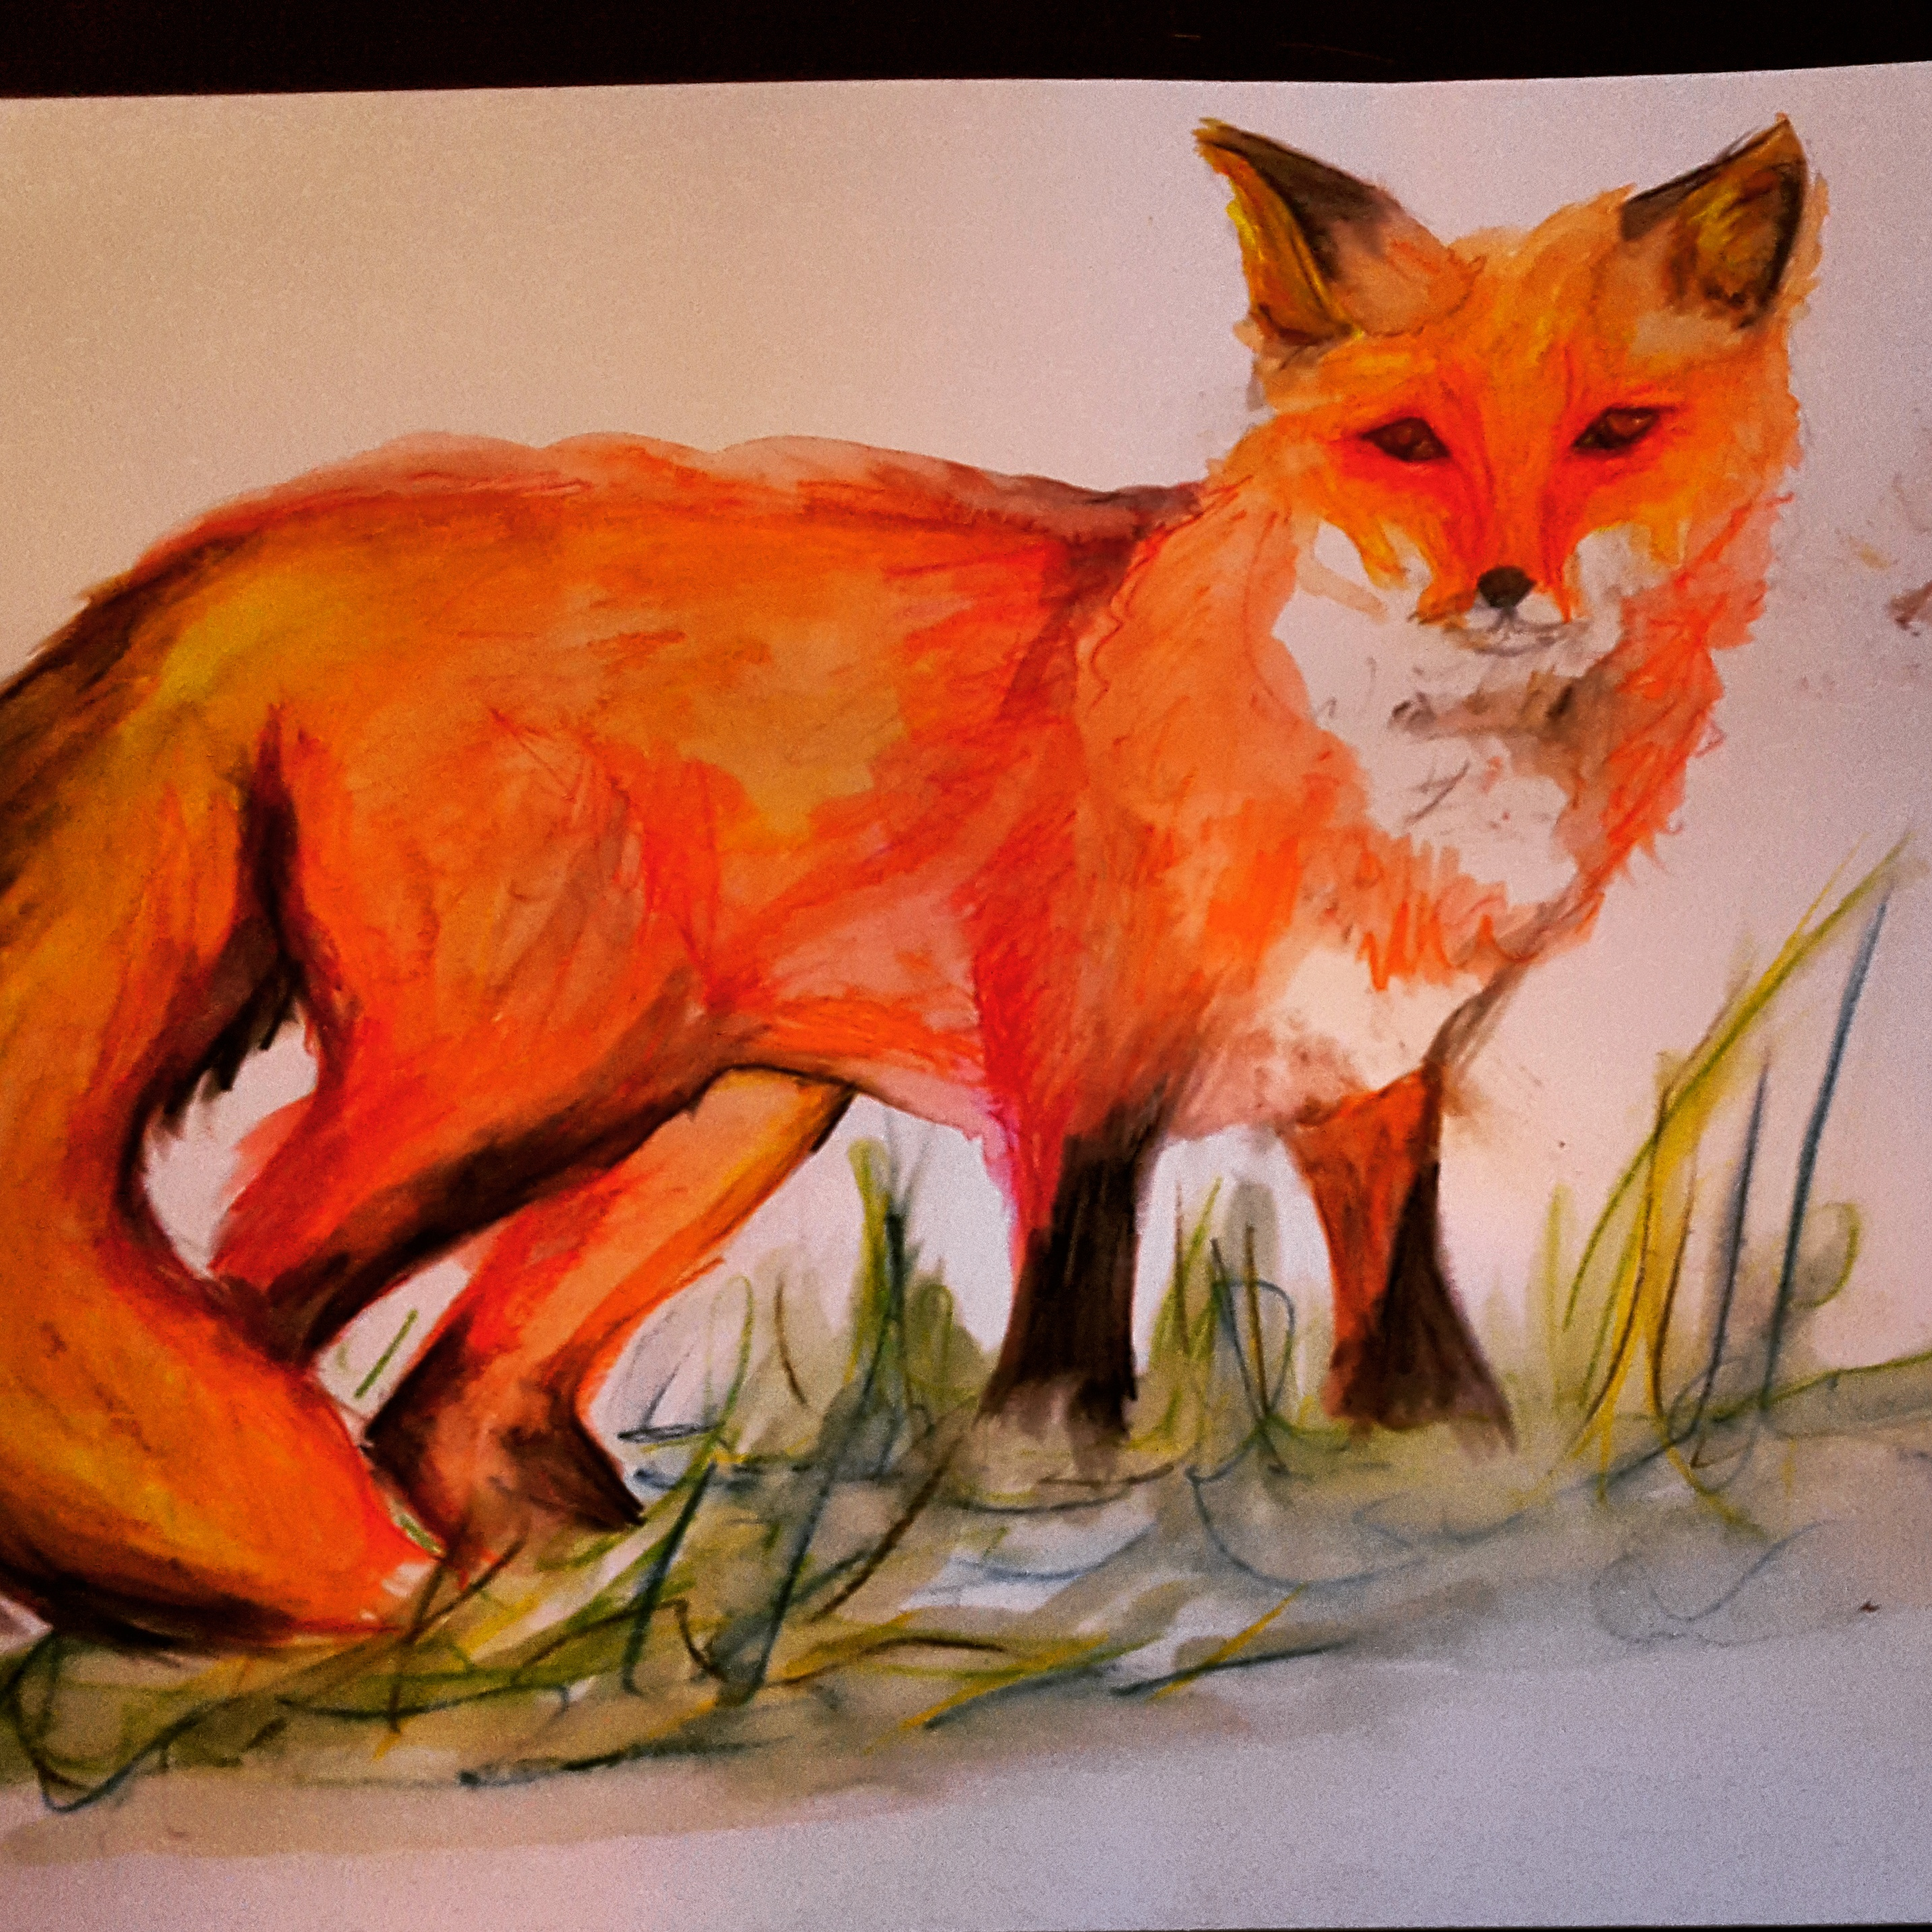 My watercolour of a fox.